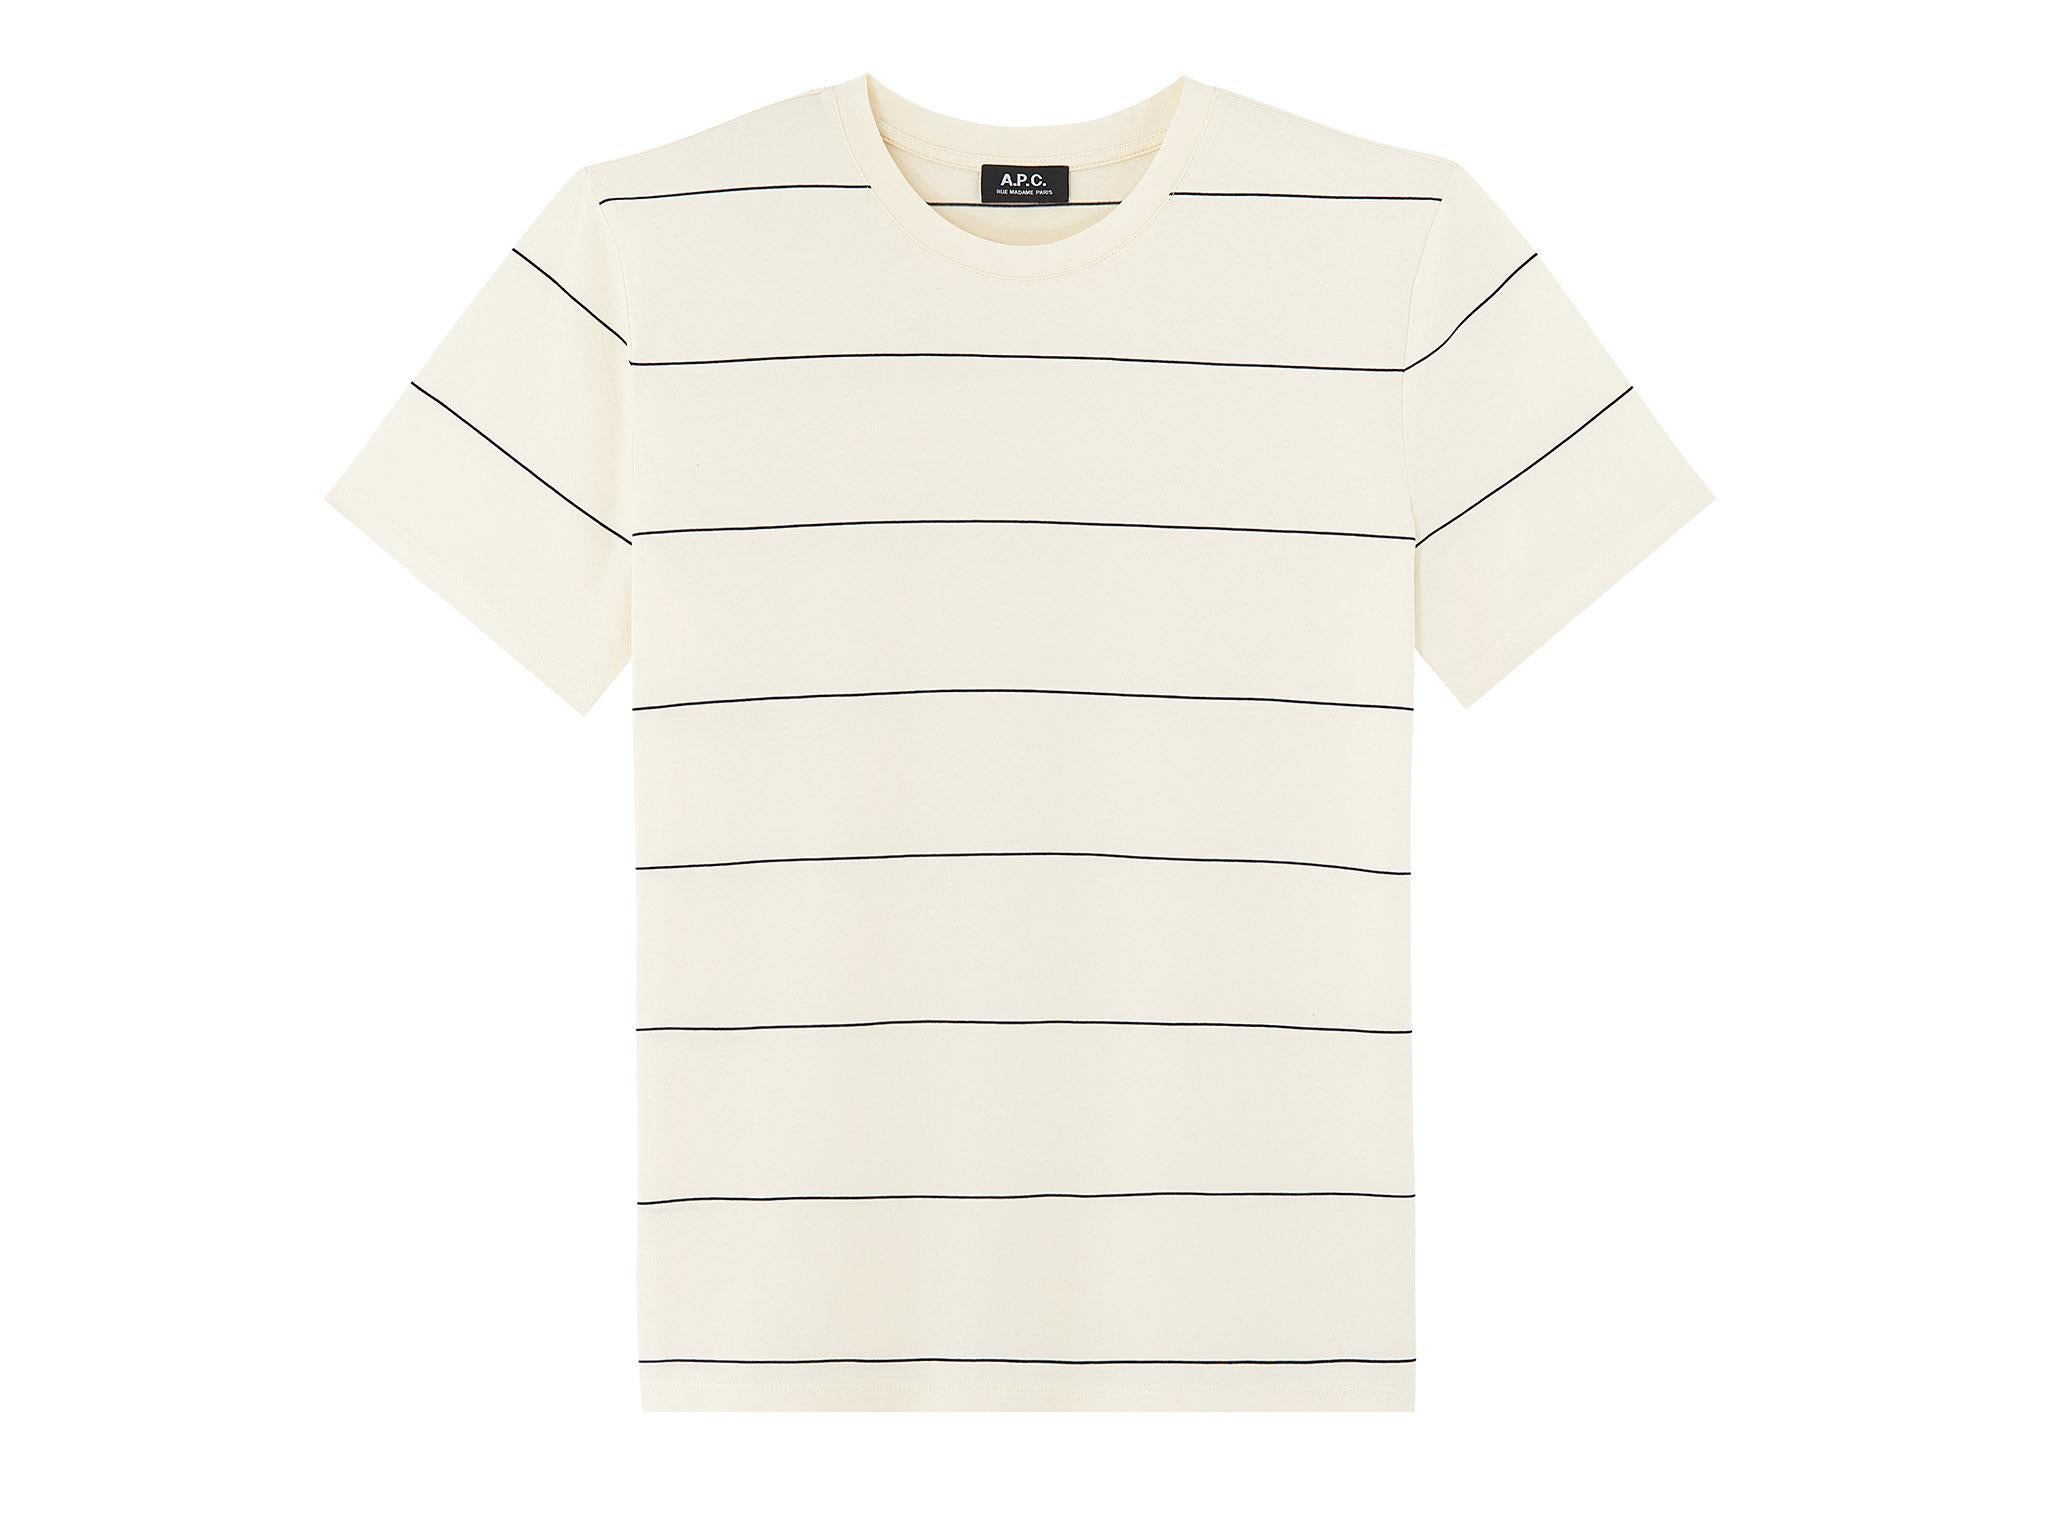 91687689ee1 Best men's T-shirts for the perfect fit, style and quality